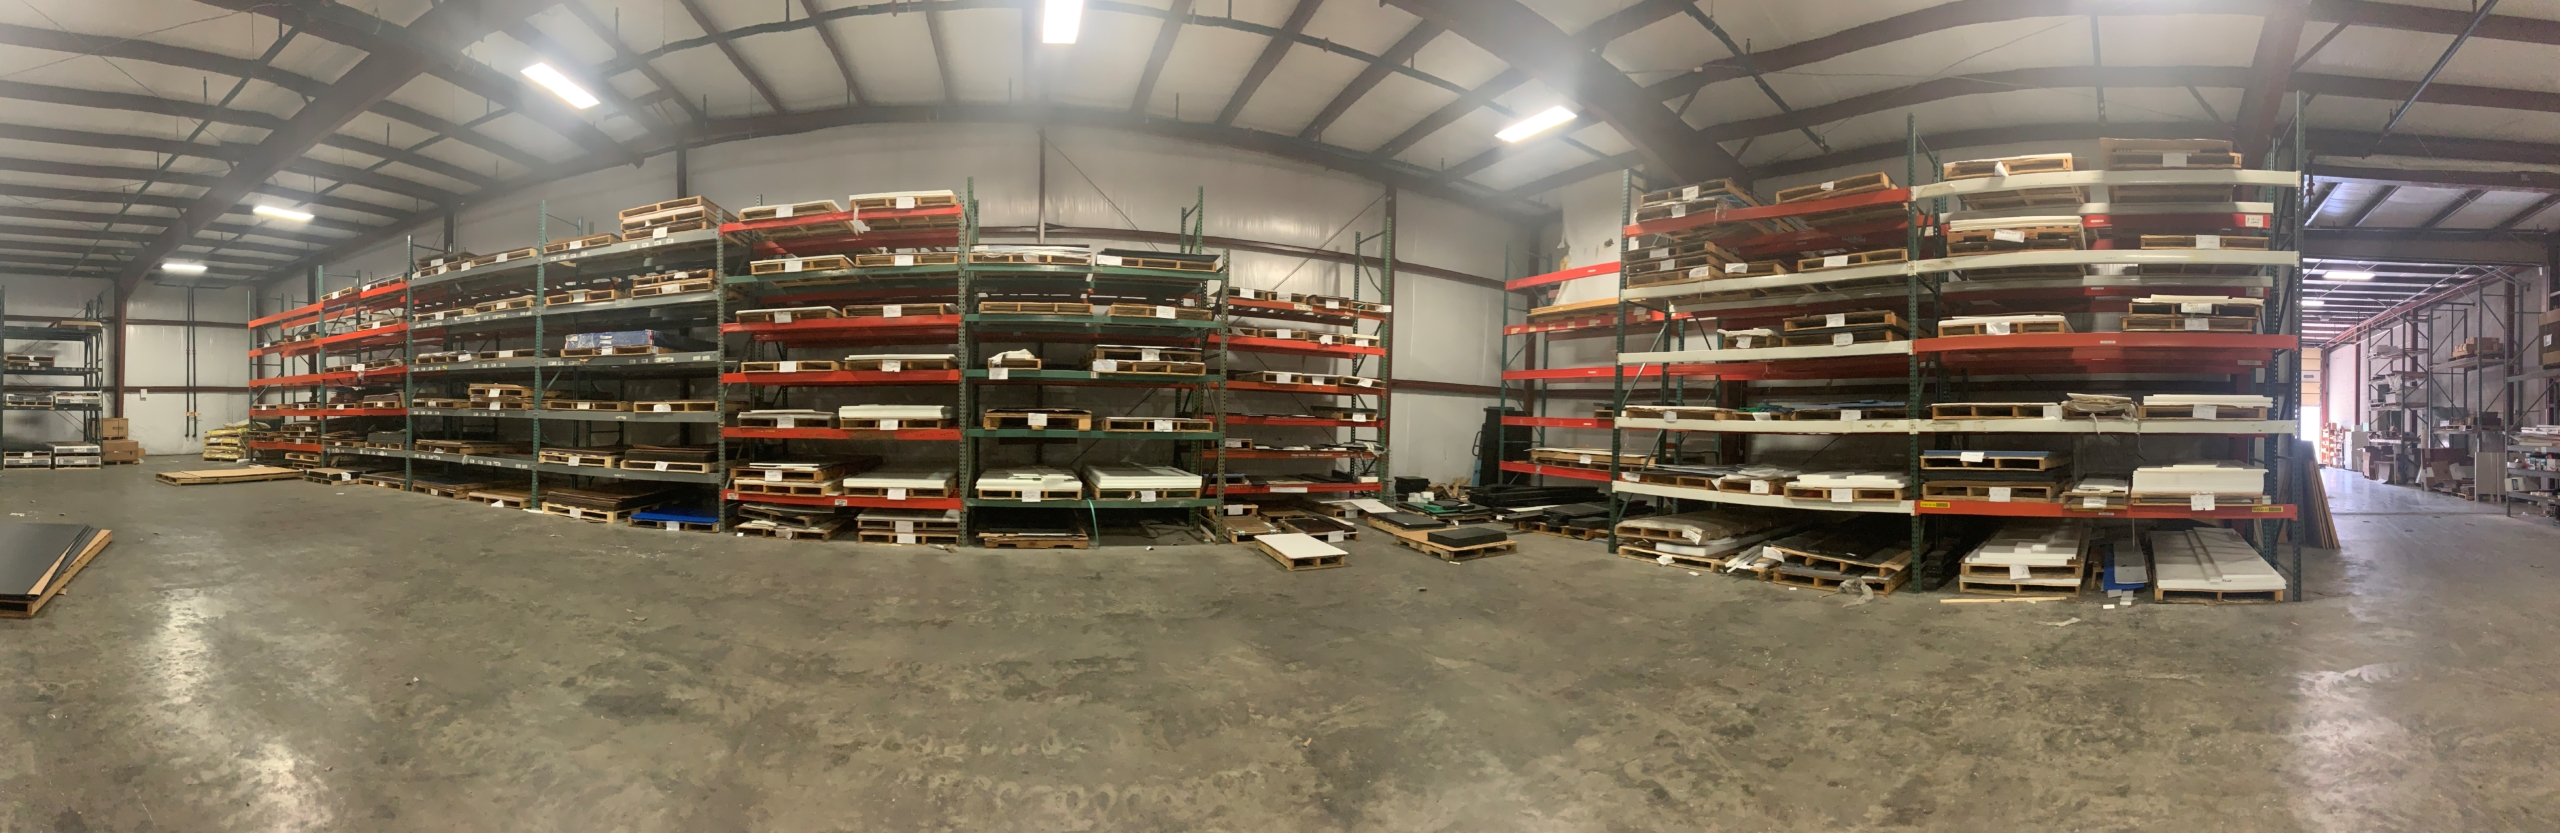 Tristate Plastics Warehouse